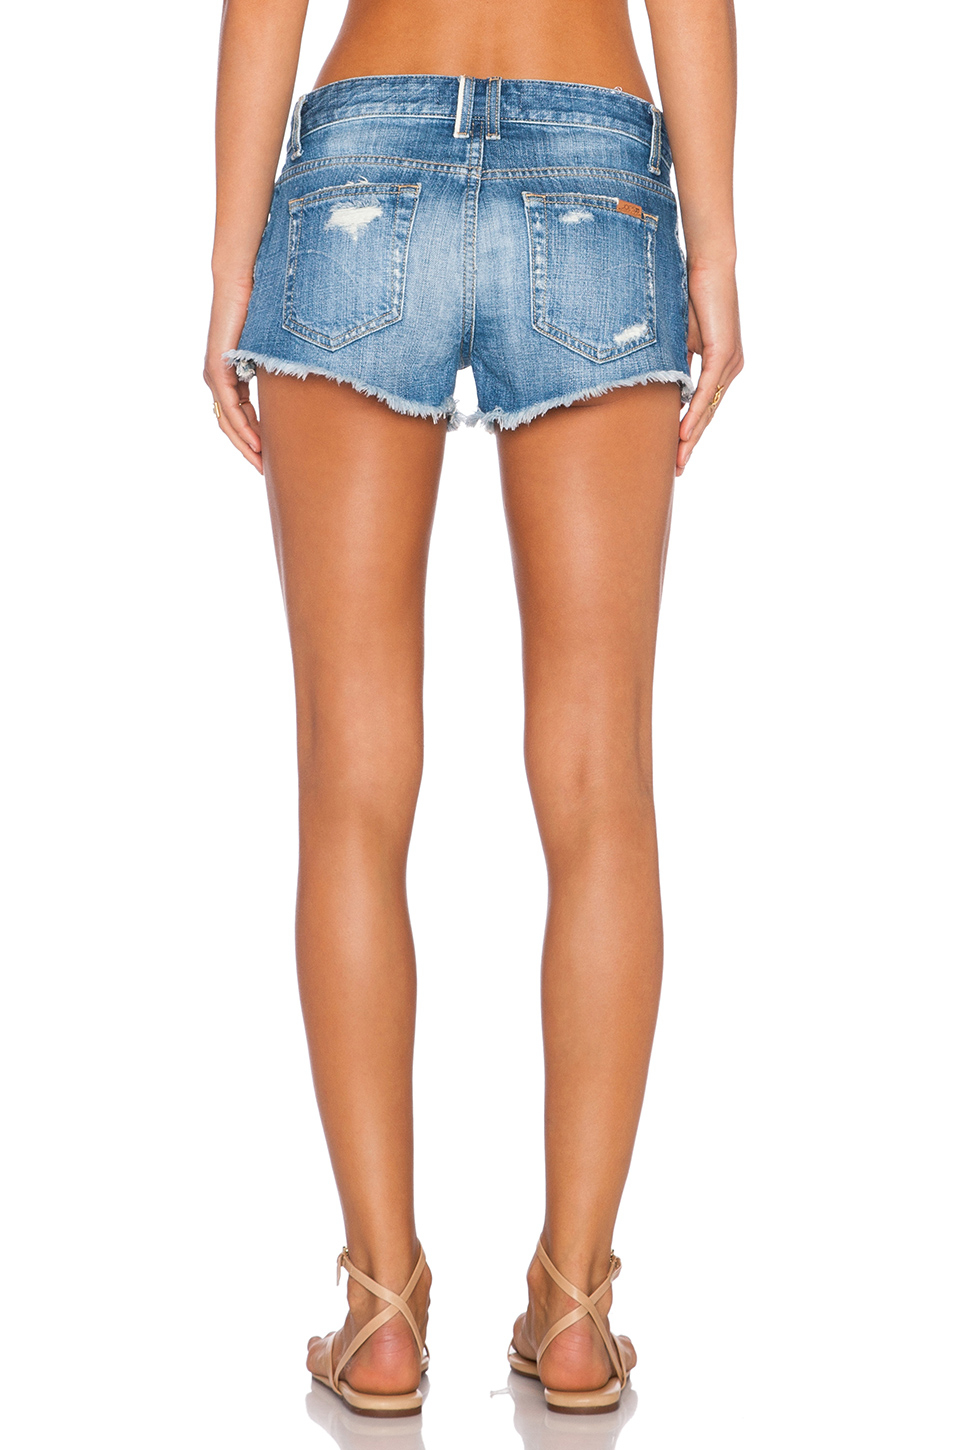 Find great deals on eBay for cut off denim shorts. Shop with confidence.